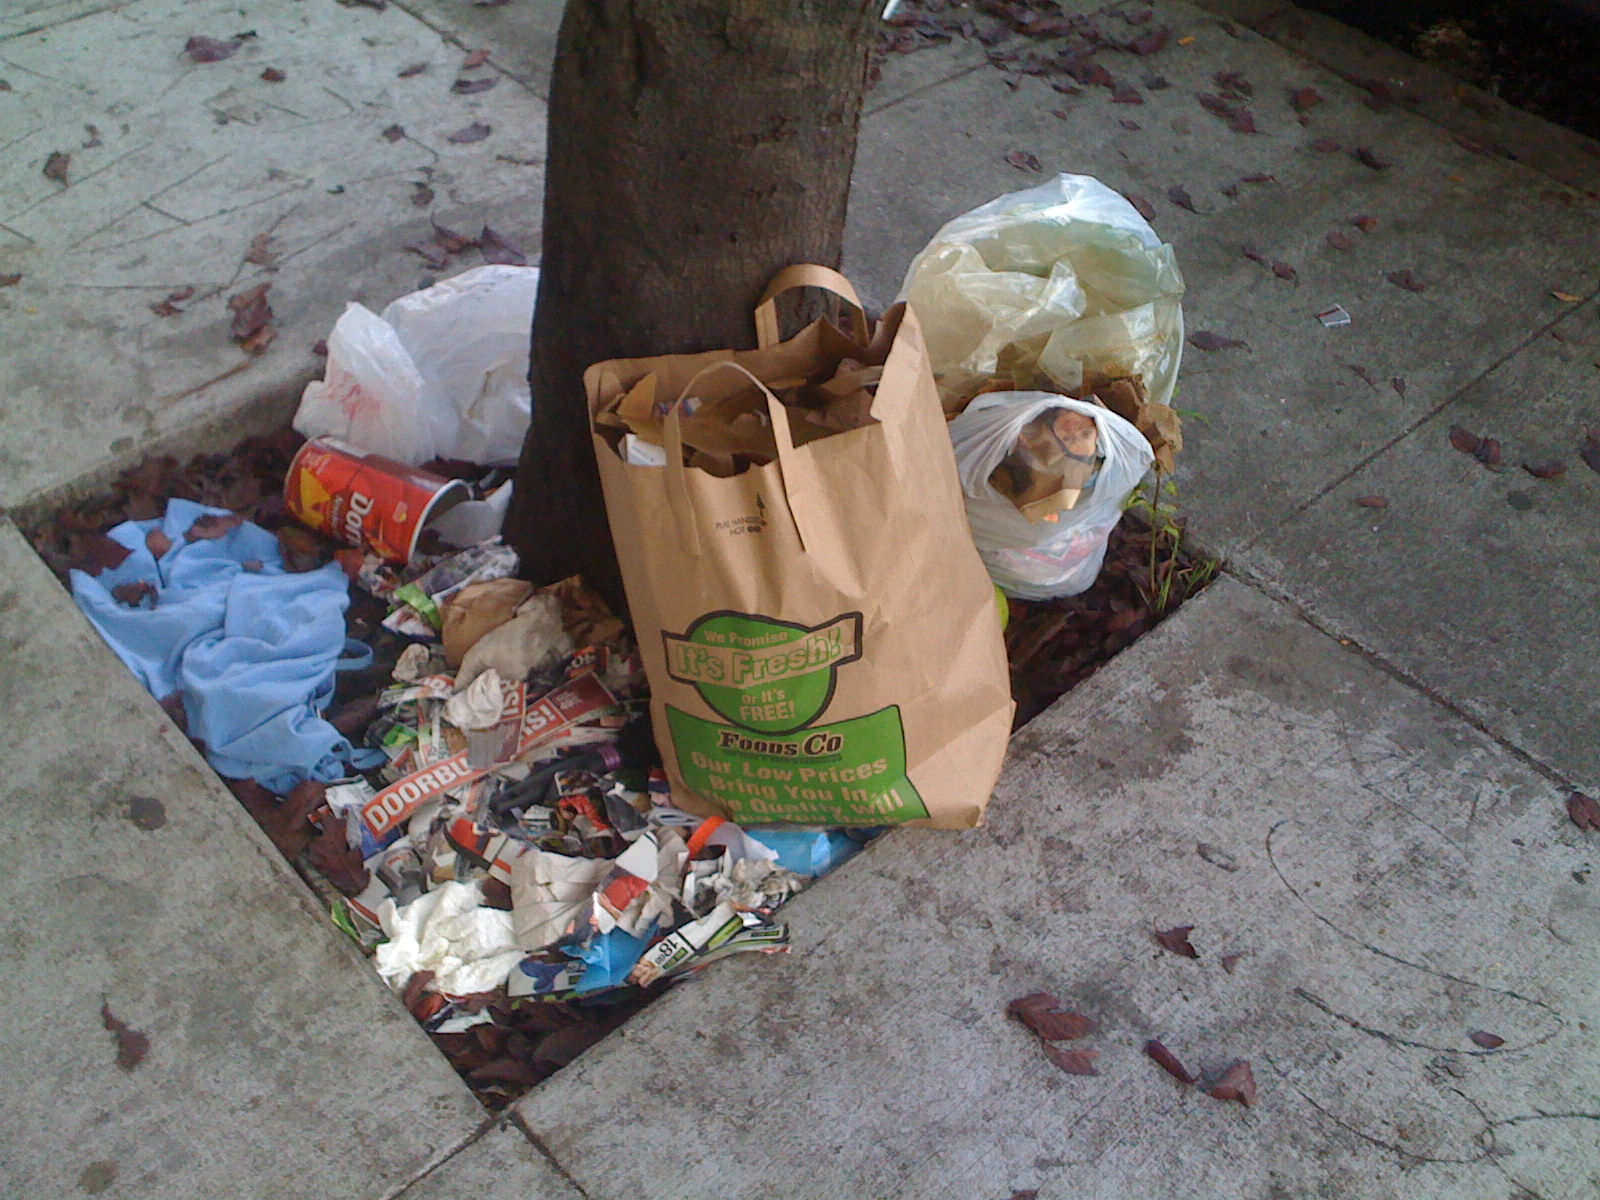 San Francisco trash